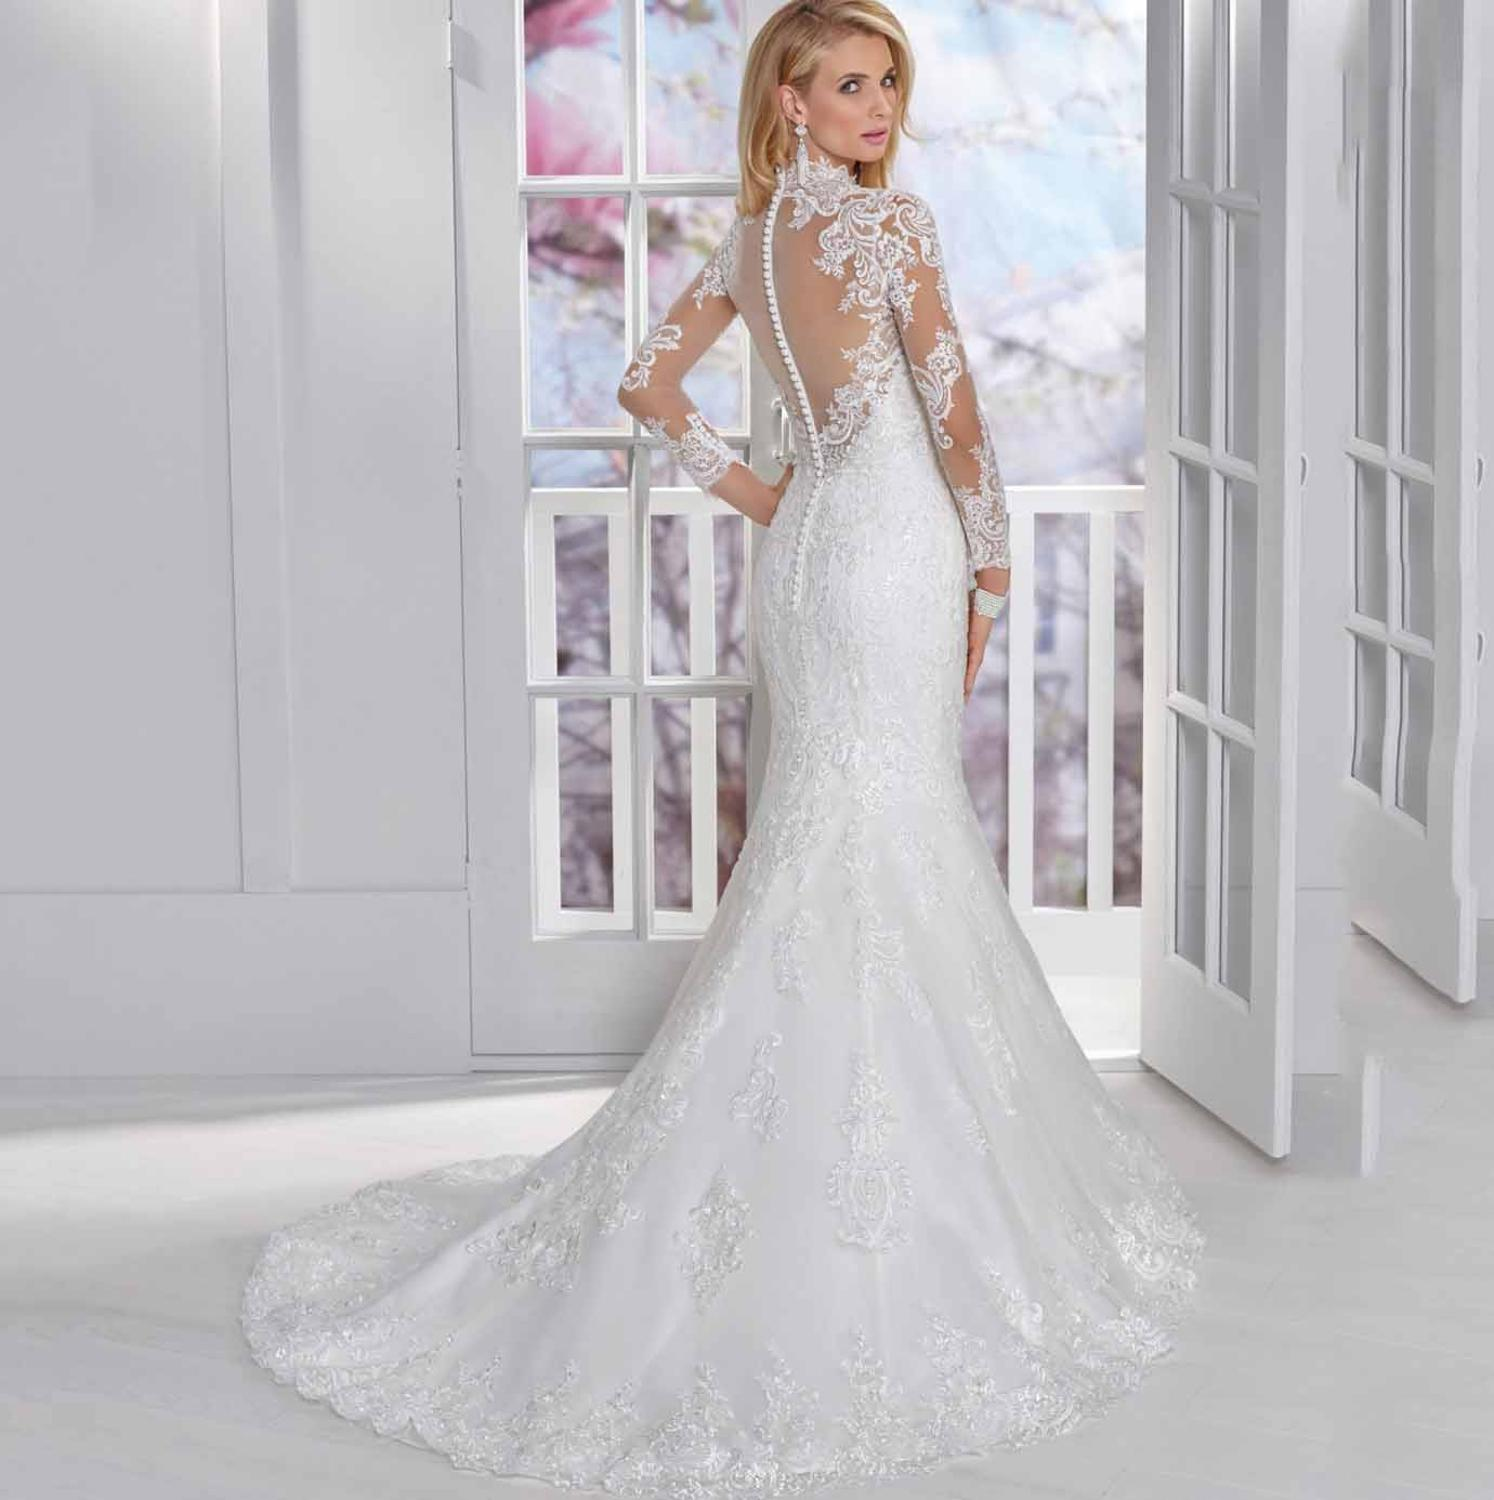 Vintage Elegant High Neck Long Sleeve Wedding Dress For Women Lace Mermaid Illusion Back Court Train Floor Length Bridal Gown in Wedding Dresses from Weddings Events